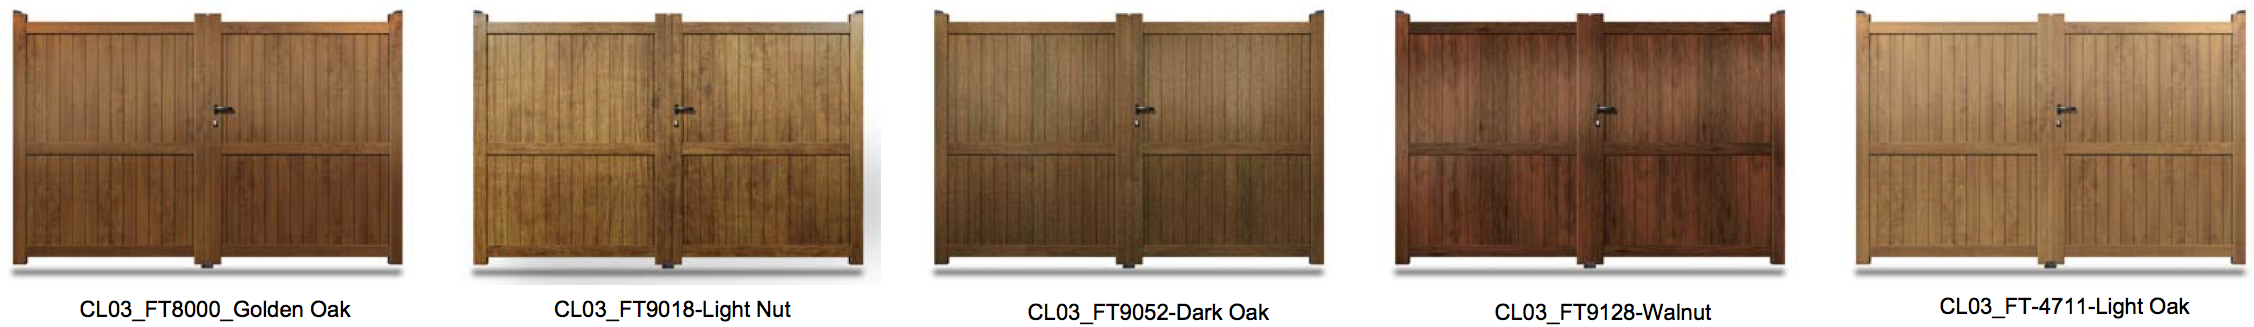 CL03 Wood Effect Aluminium Gate